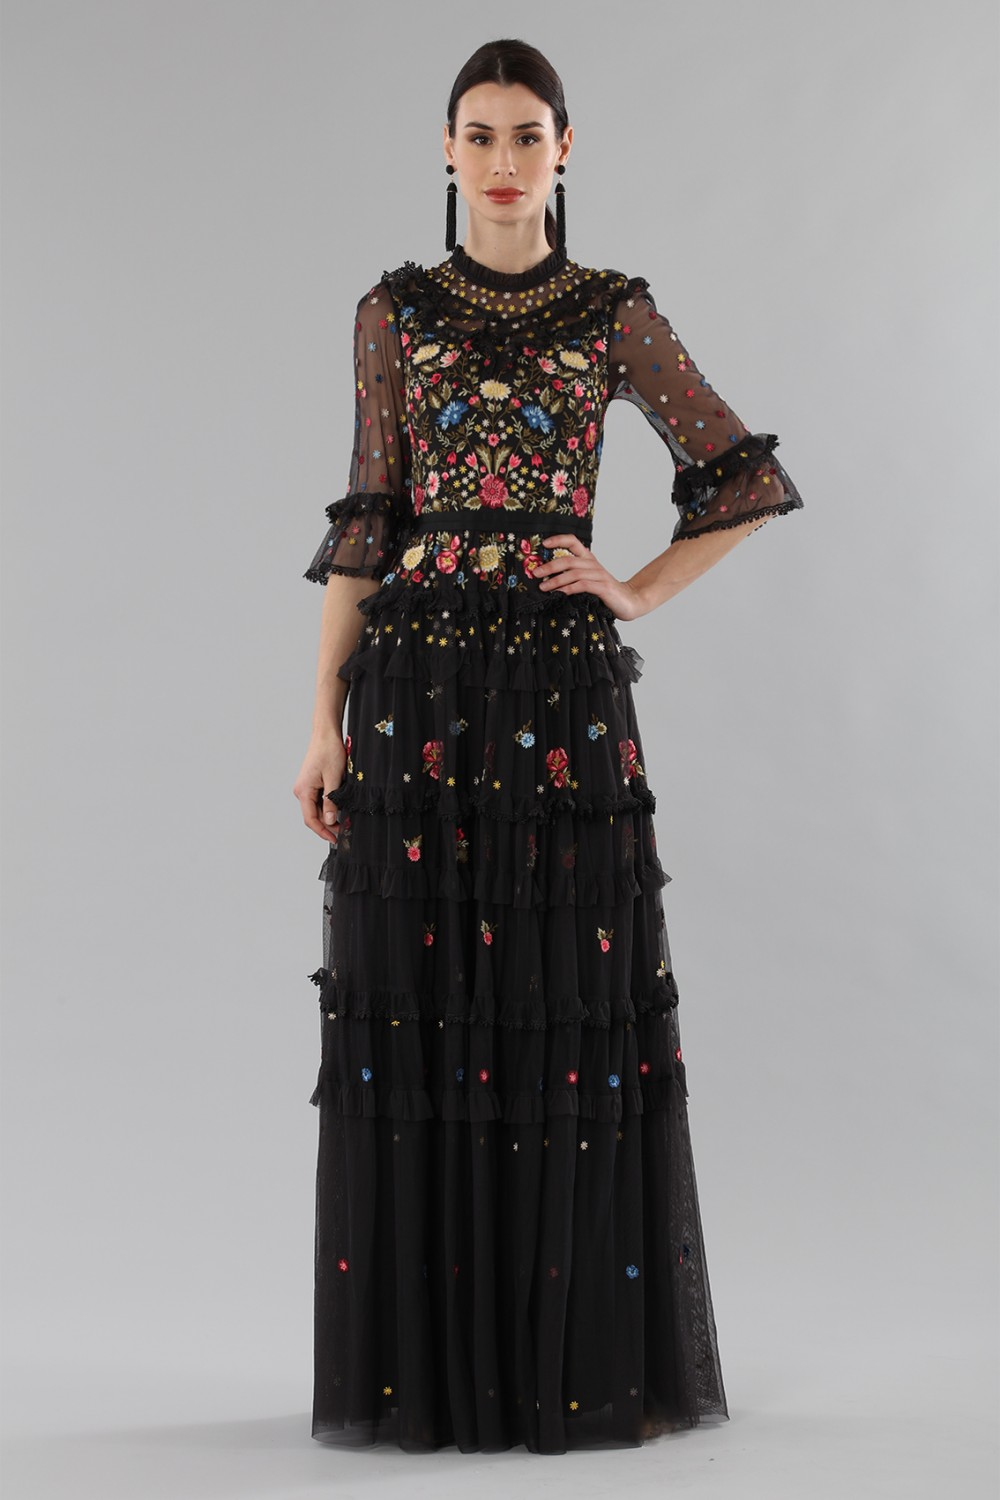 Long black dress in tulle with floral decorations